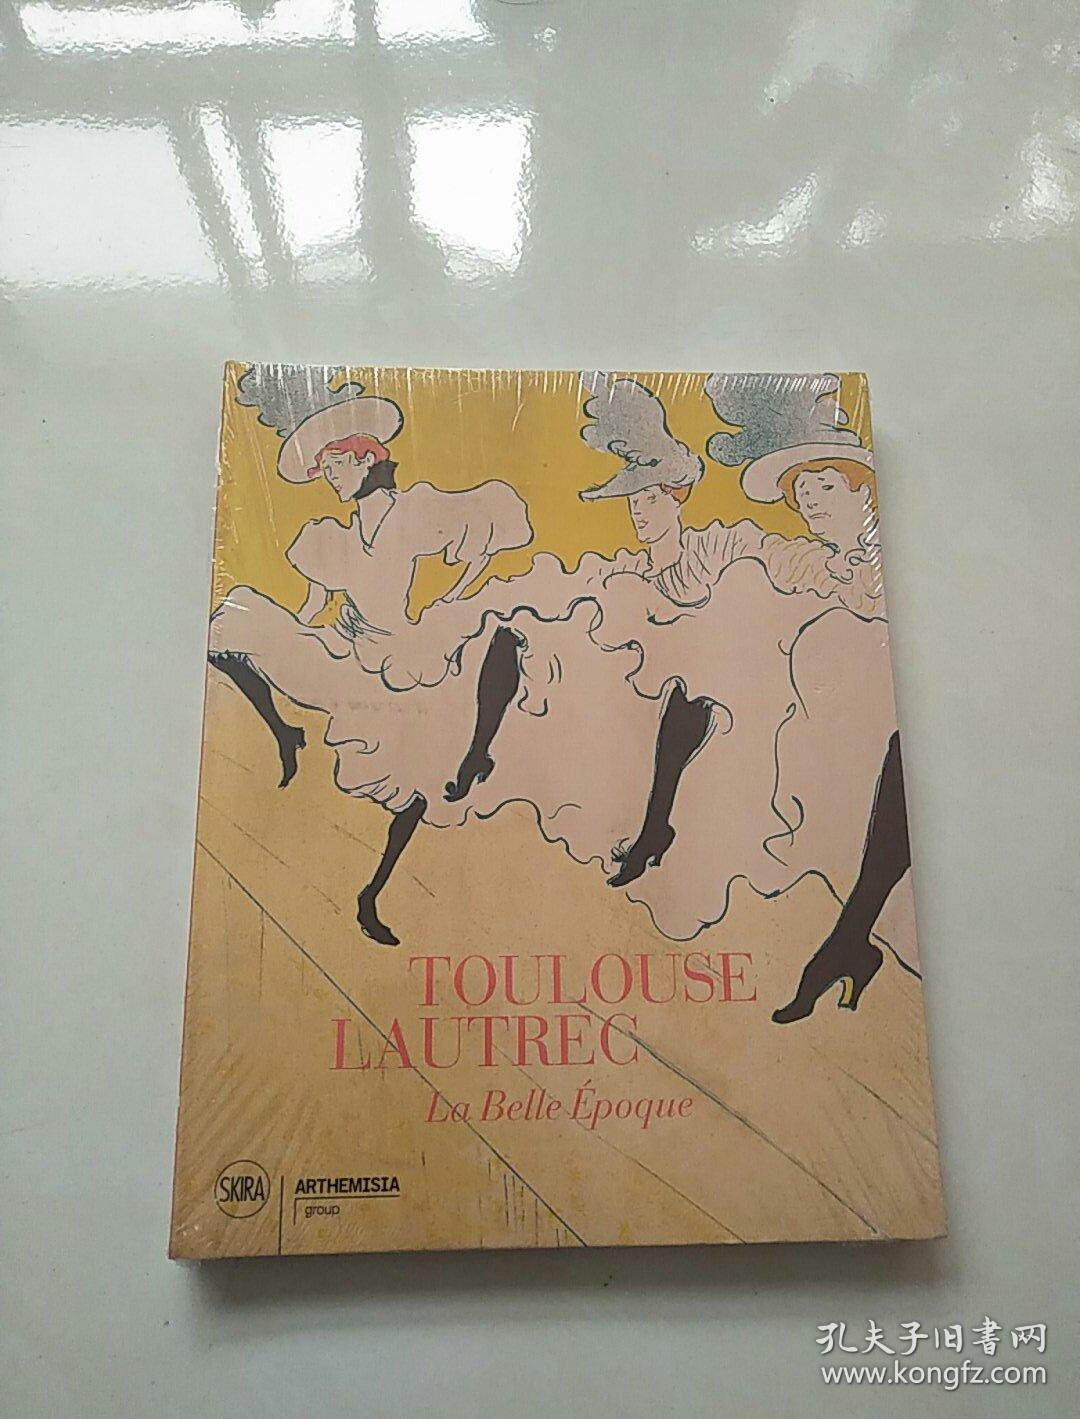 Toulouse Lautrec illustre la Belle Époque